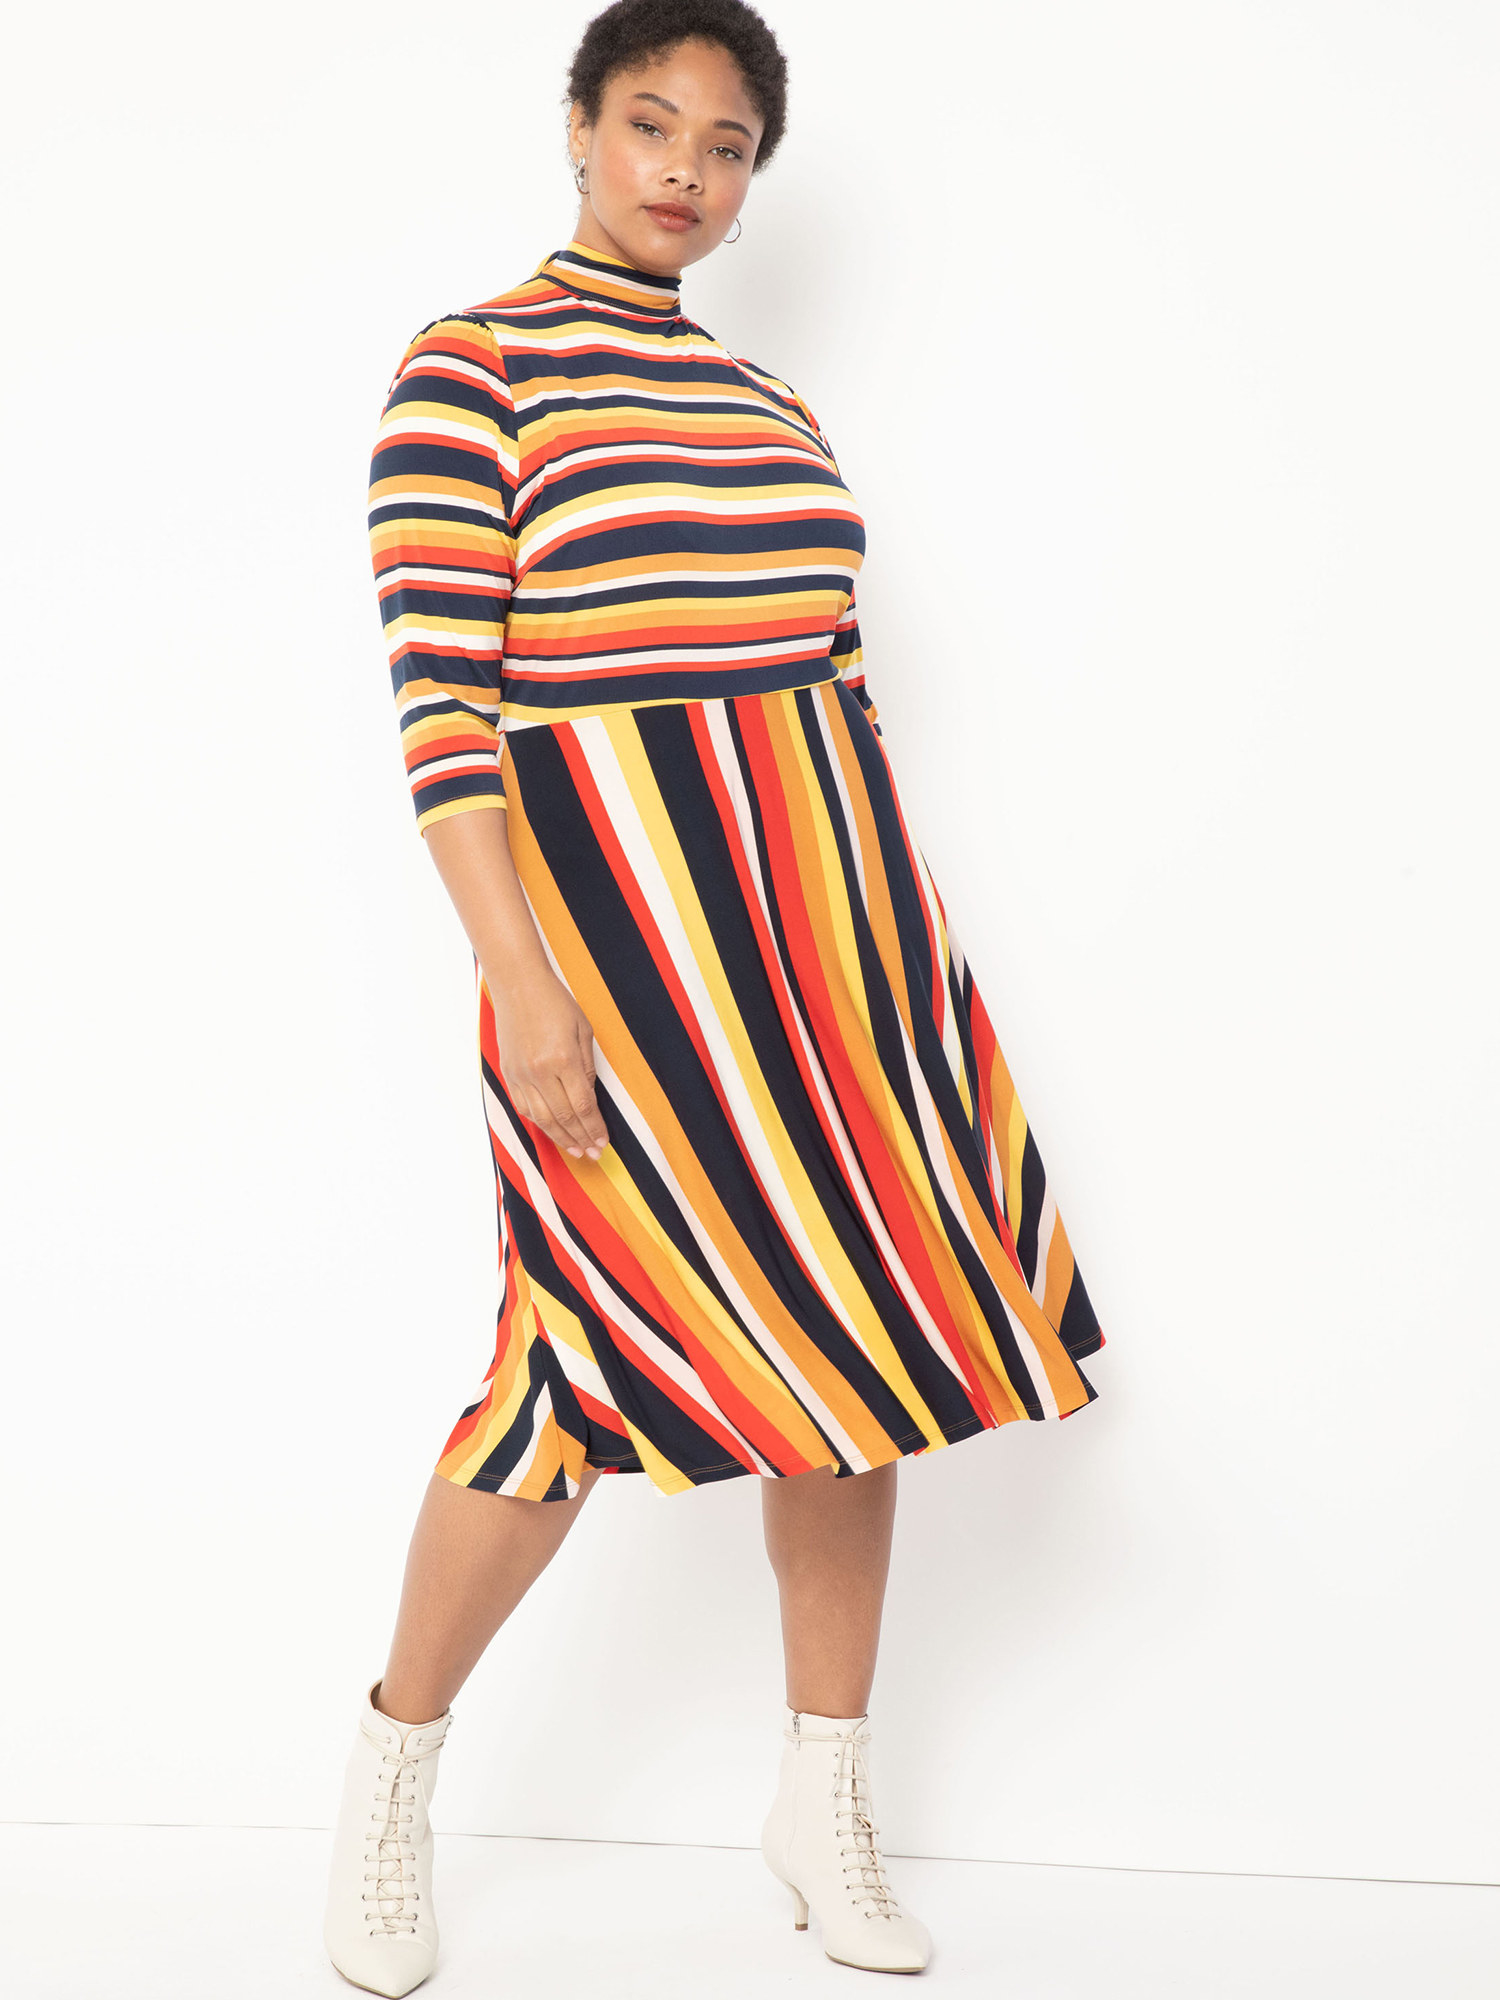 A model wearing the color striped dress